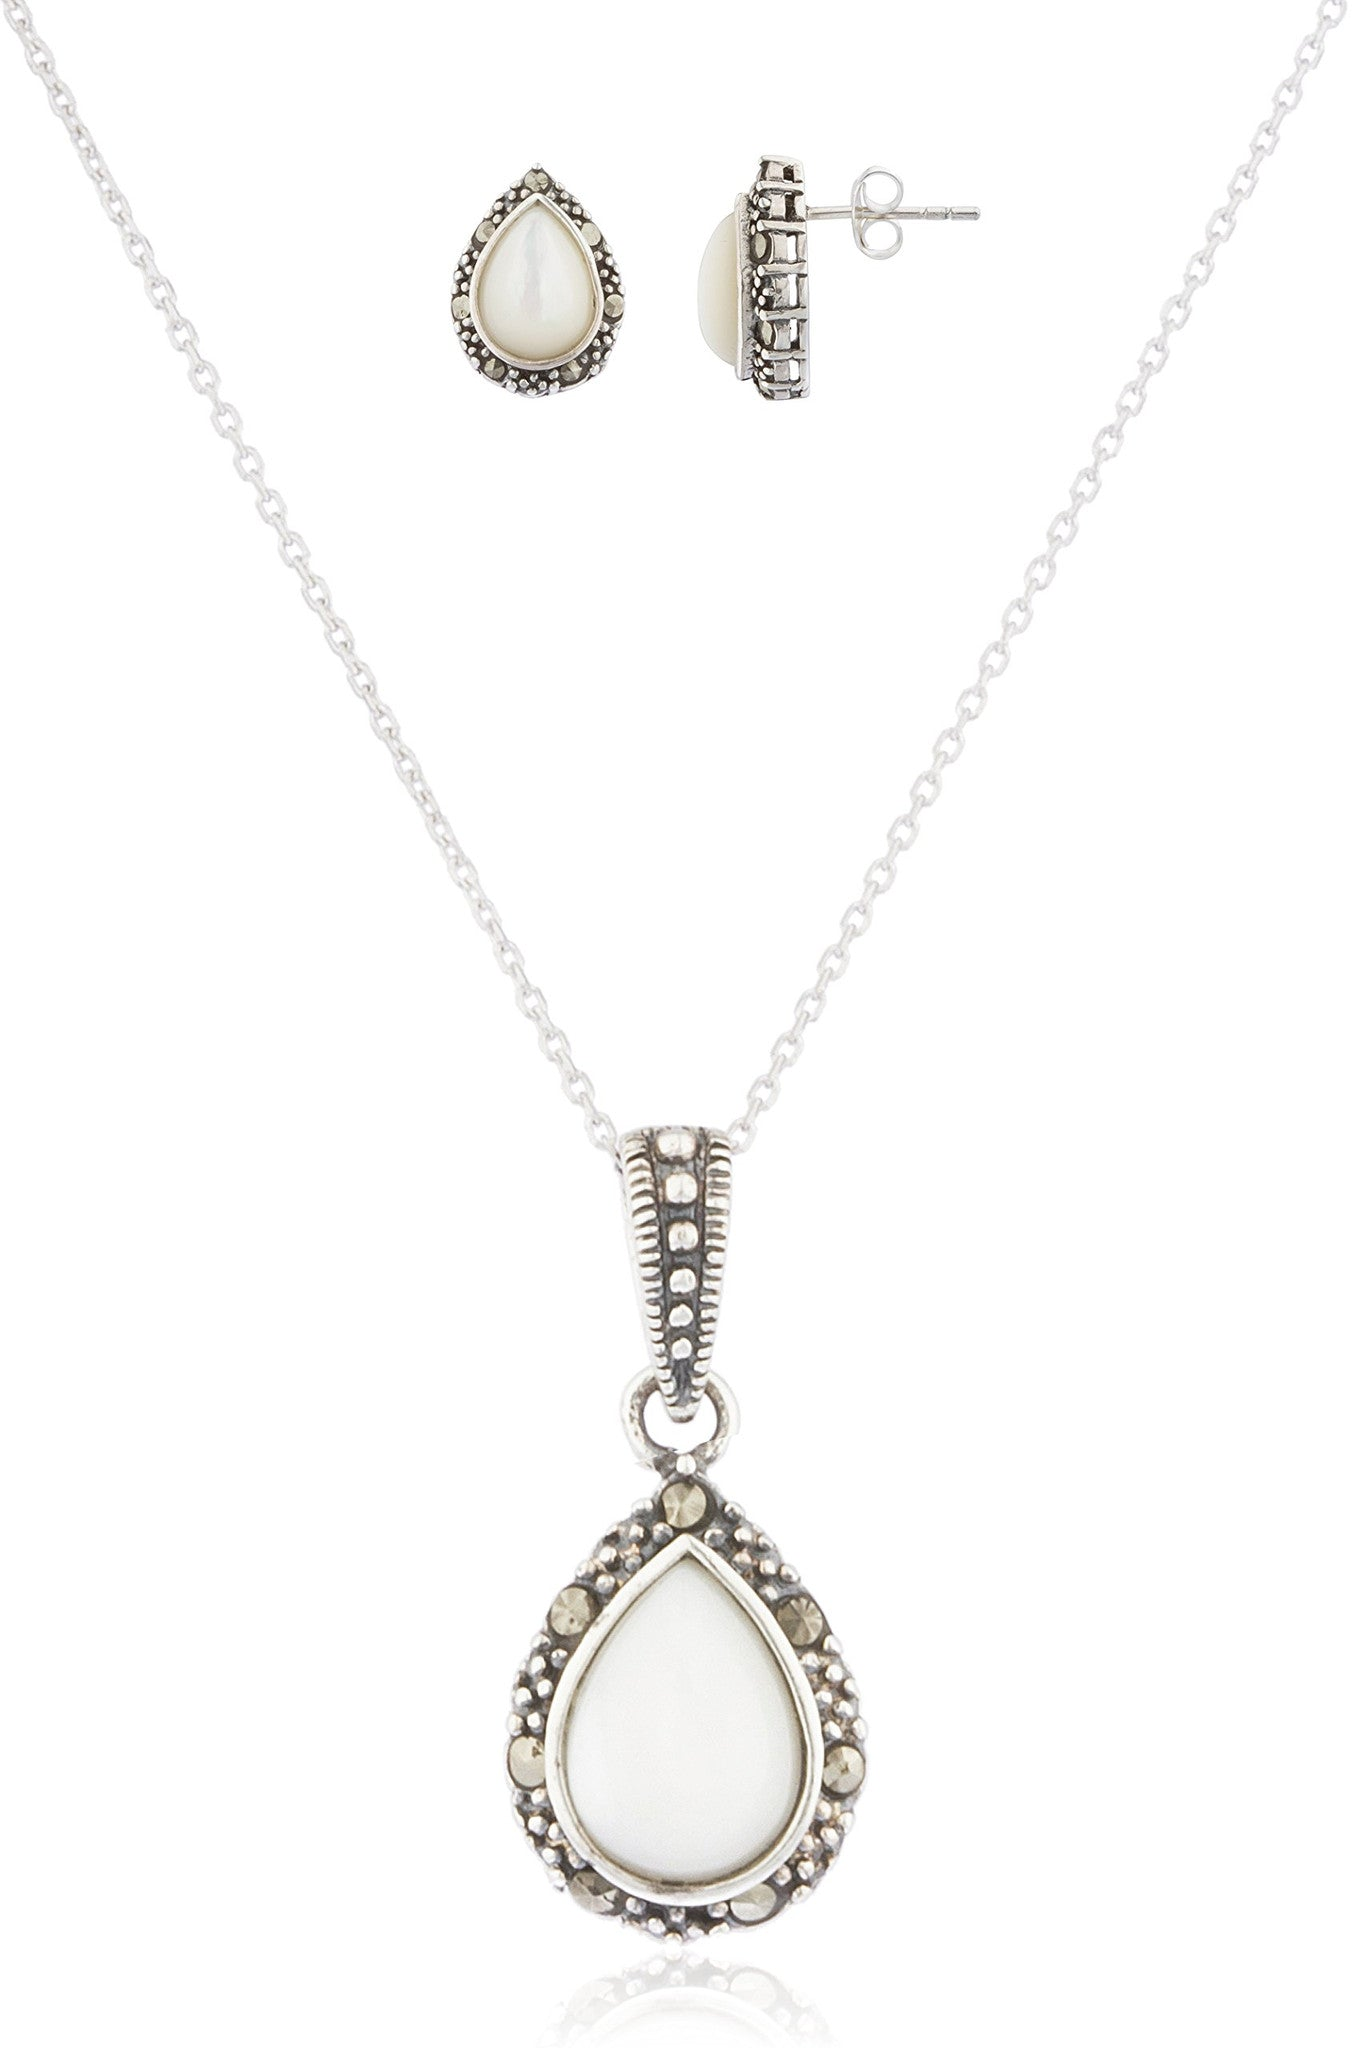 marcassite.com Real 925 Sterling Silver Swiss Marcasite Teardrop Earrings and Pendant with 18 Inch Necklace Jewelry Set (Off-White)